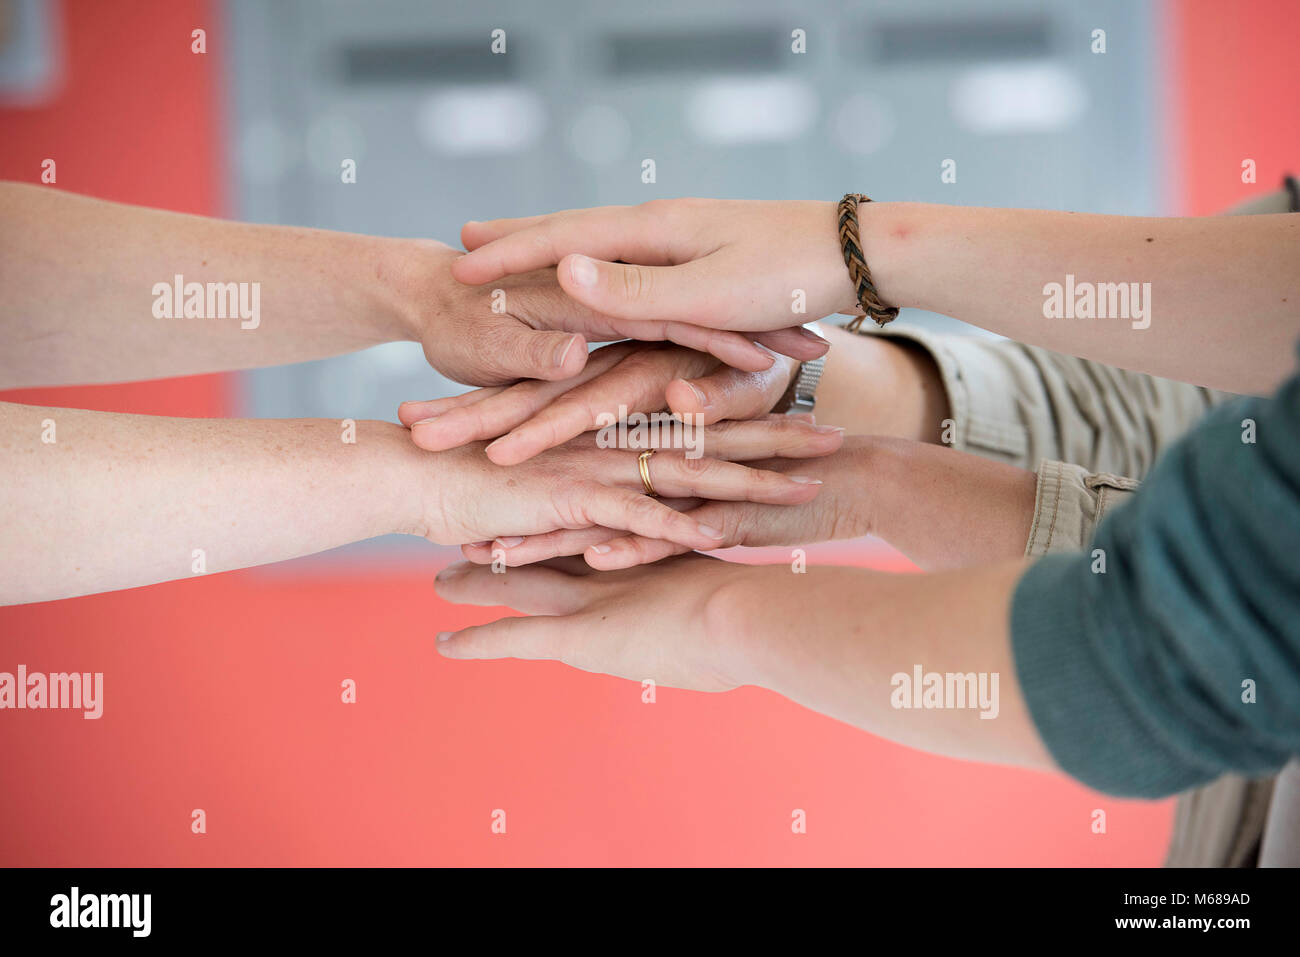 Hands of several persons lying on top of each other - Stock Image